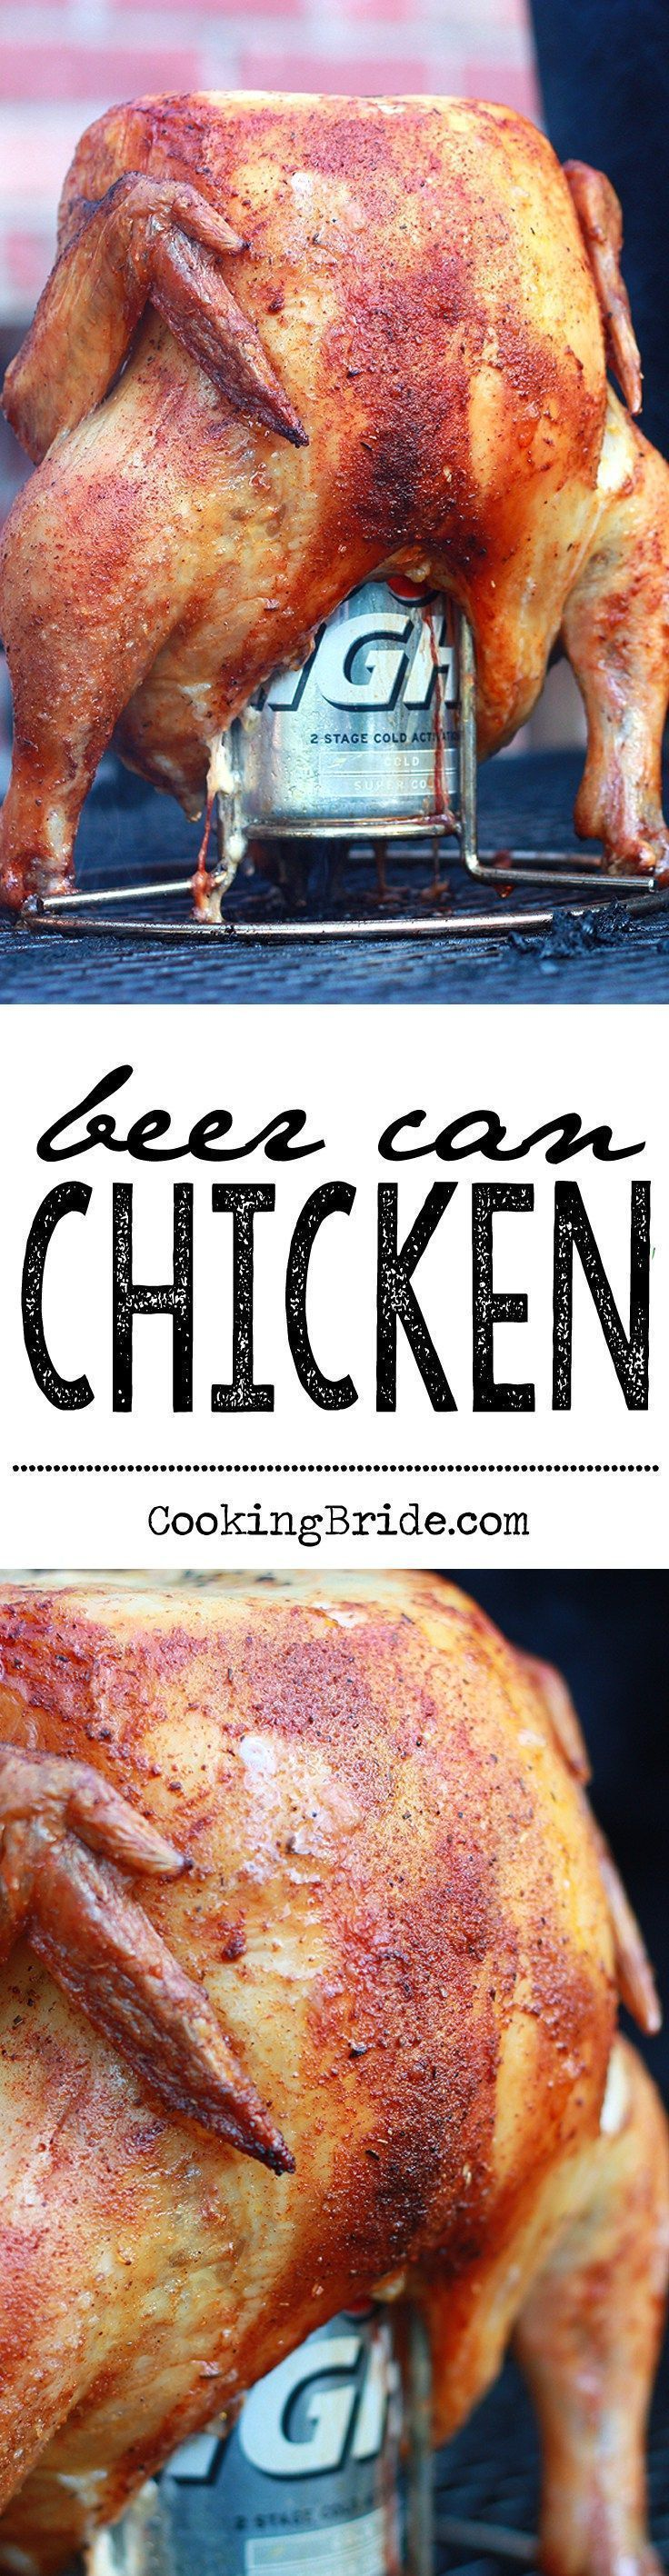 Tender and juicy beer can chicken recipe is seasoned with a blend of Cajun-inspired herbs and spices. Serve with drippings for maximum flavor. #Chicken #Grilling #chickengrill